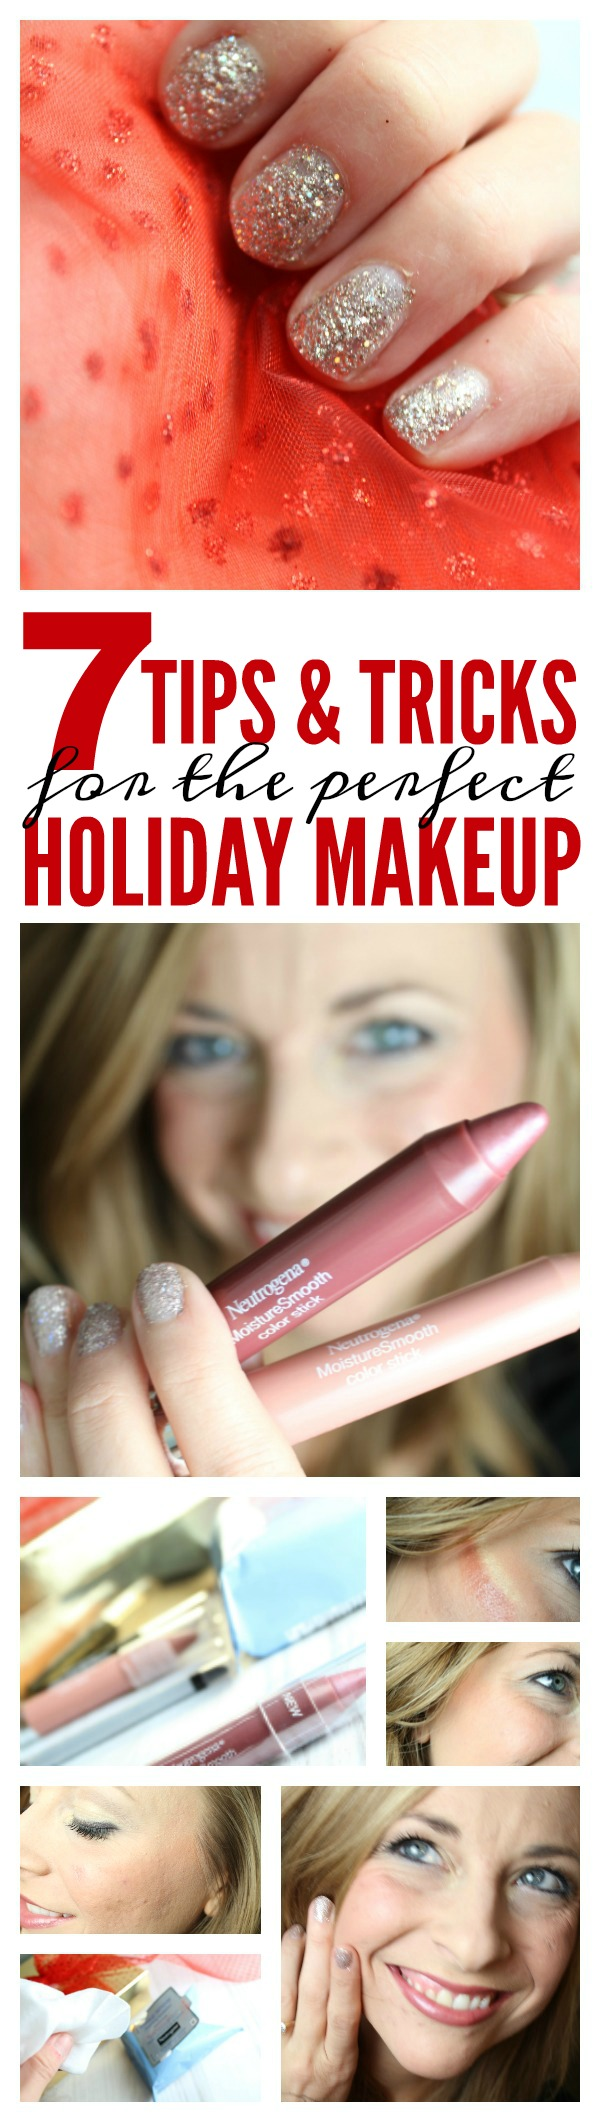 Top 7 Holiday Makeup Tips and Tricks for Christmas and New Years! Easy and Simple